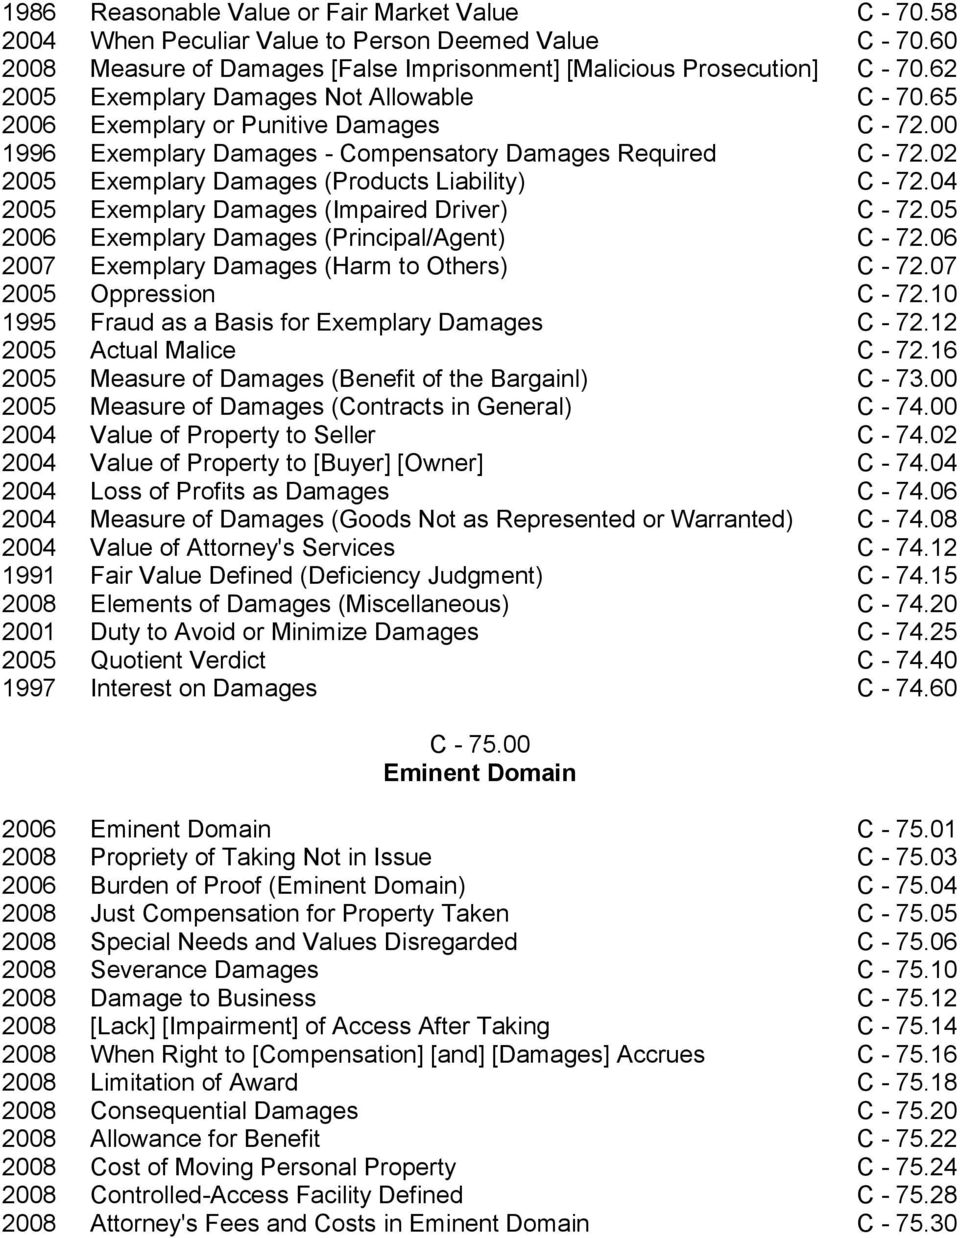 02 2005 Exemplary Damages (Products Liability) C - 72.04 2005 Exemplary Damages (Impaired Driver) C - 72.05 2006 Exemplary Damages (Principal/Agent) C - 72.